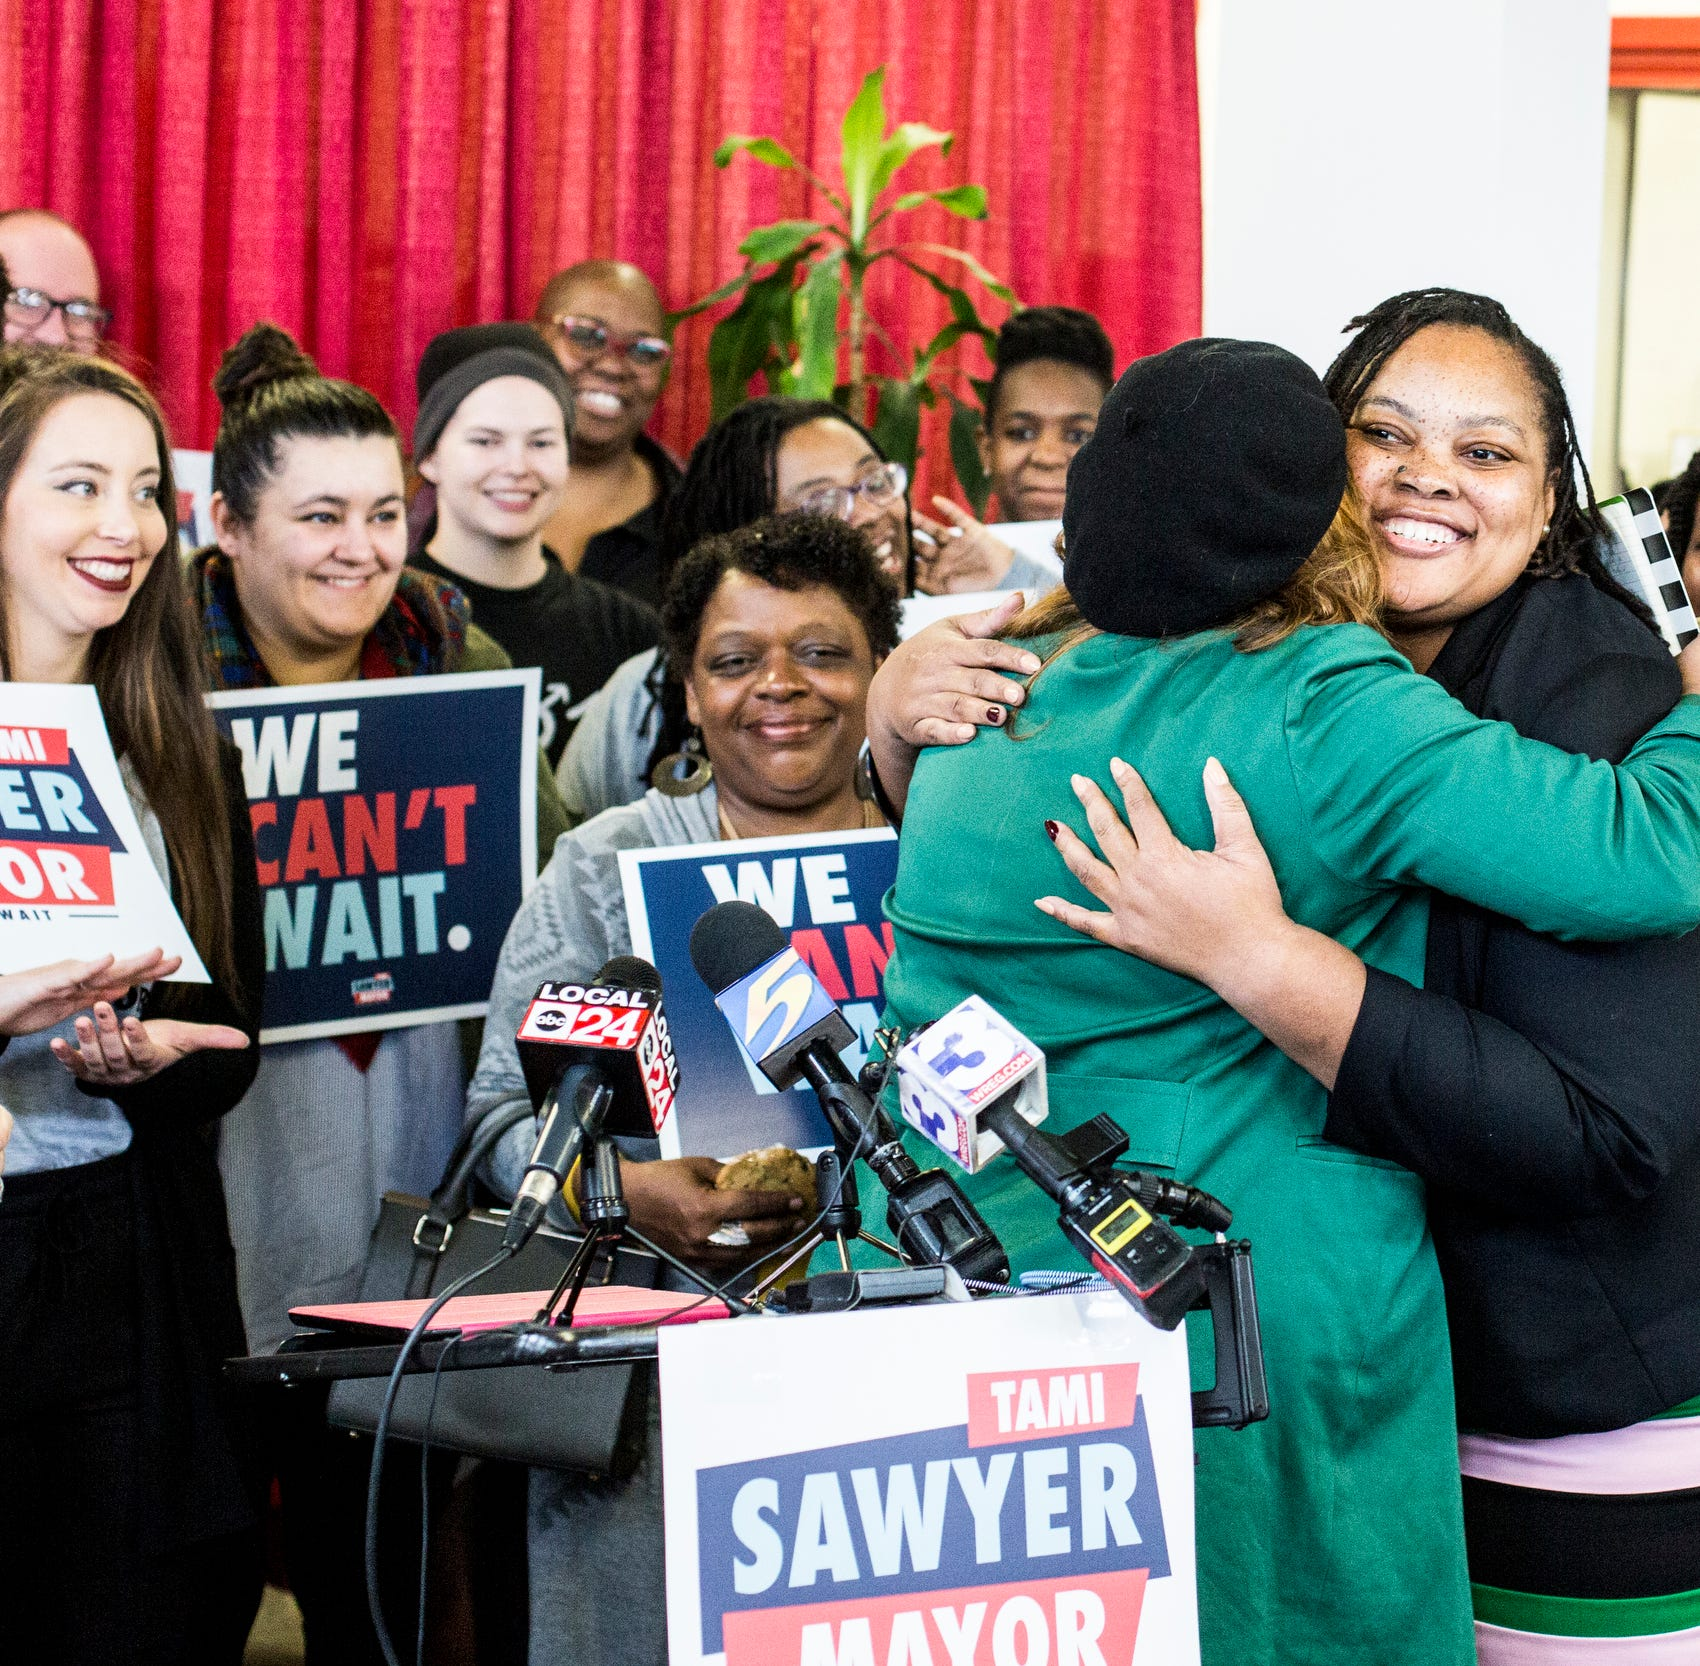 Tami Sawyer launches equity-focused platform in her bid to be Memphis' first woman mayor